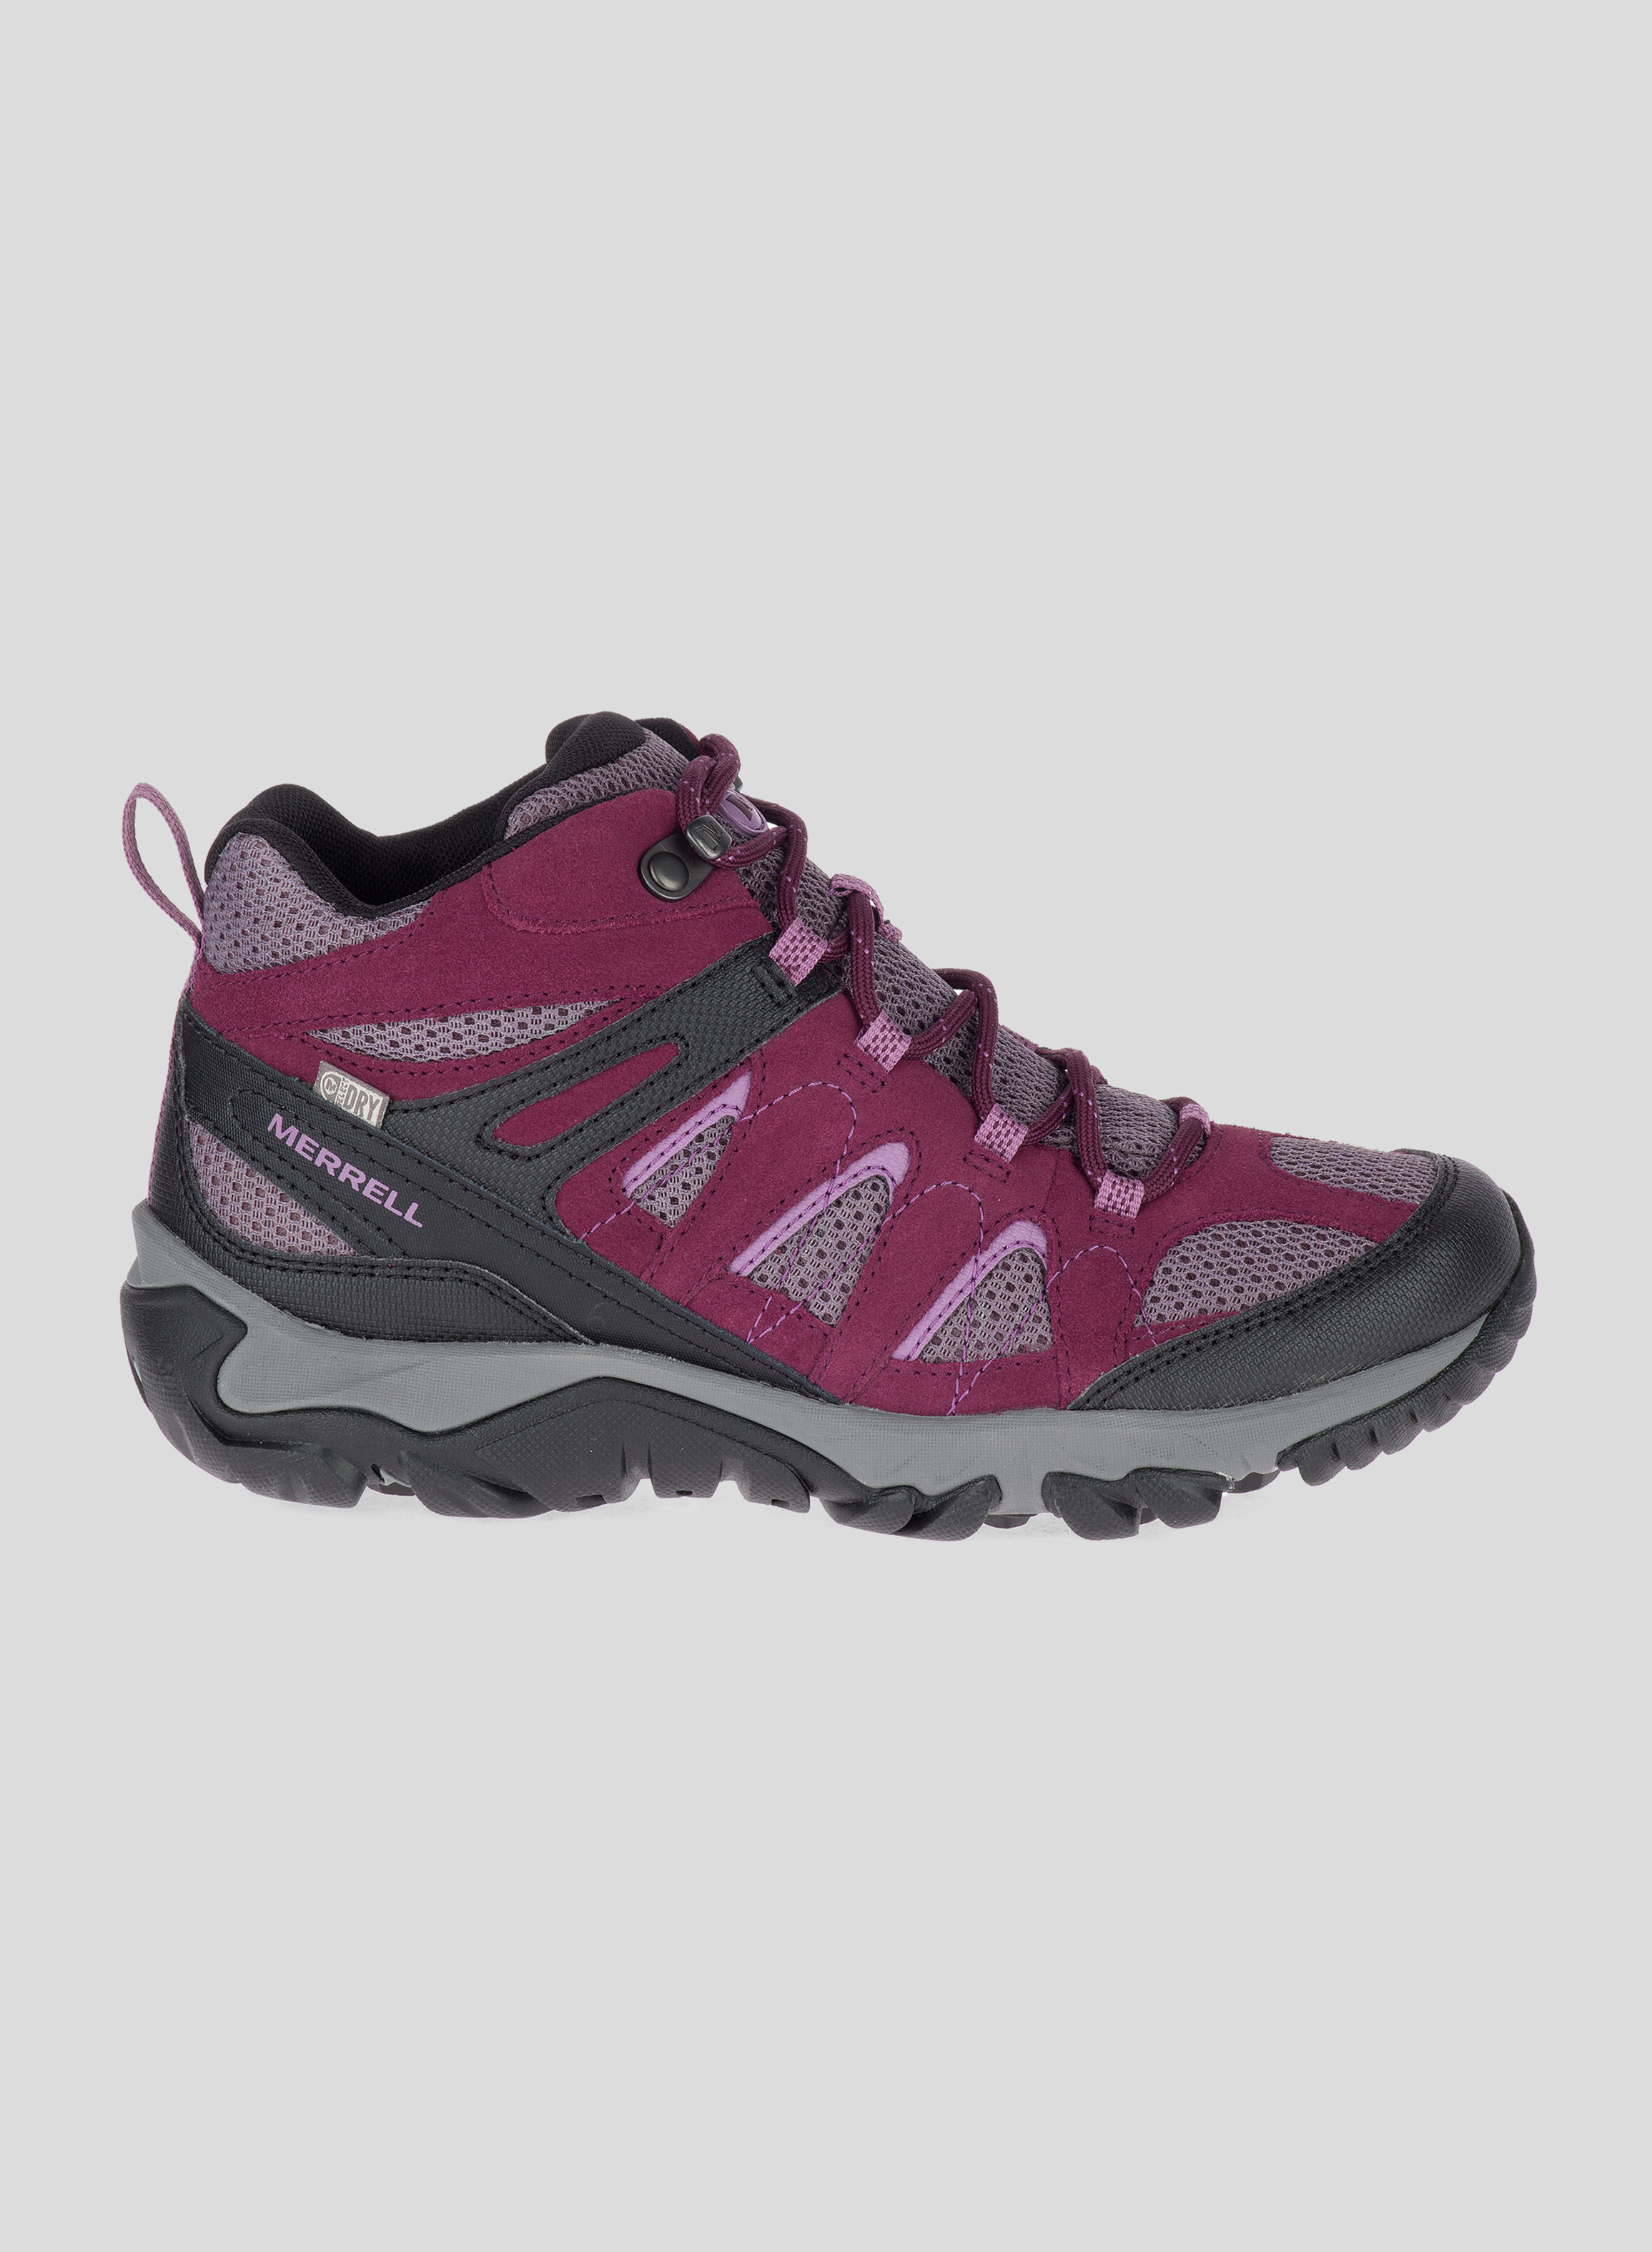 Outmost Zapatilla Mujer ZapatosParis Merrell En Outdoor OP8nkX0w